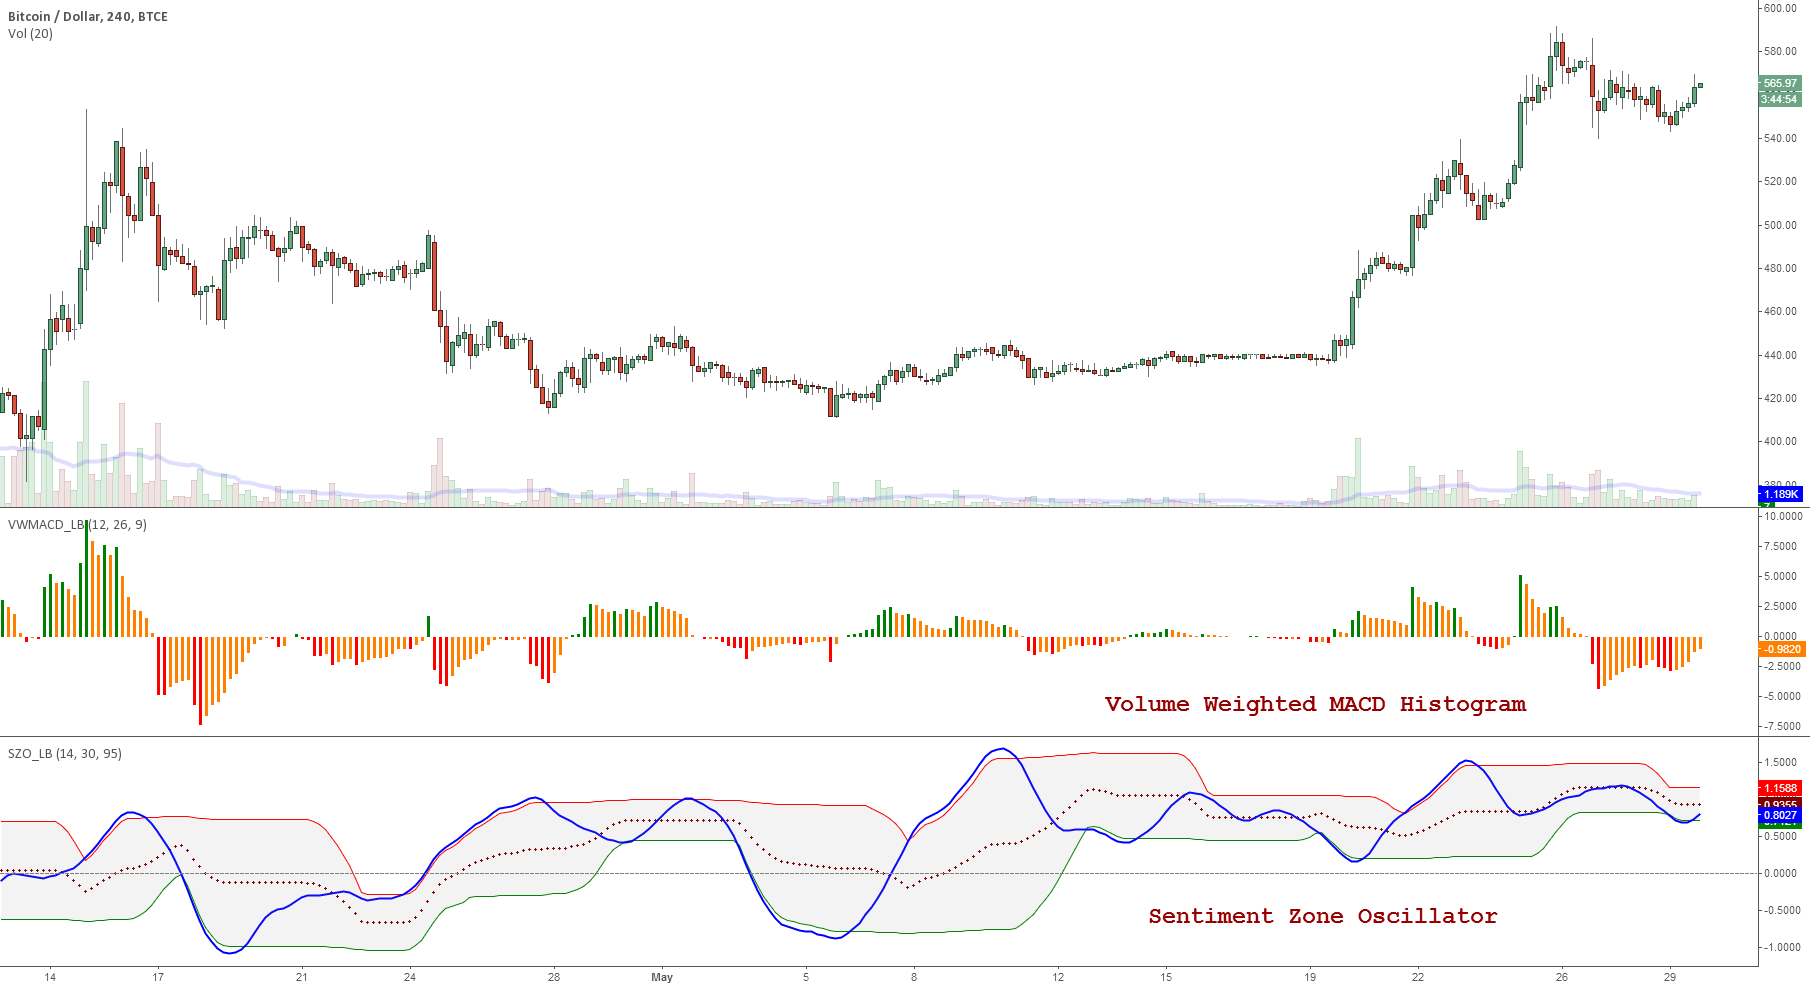 Indicators: Volume-Weighted MACD Histogram & Sentiment Zone